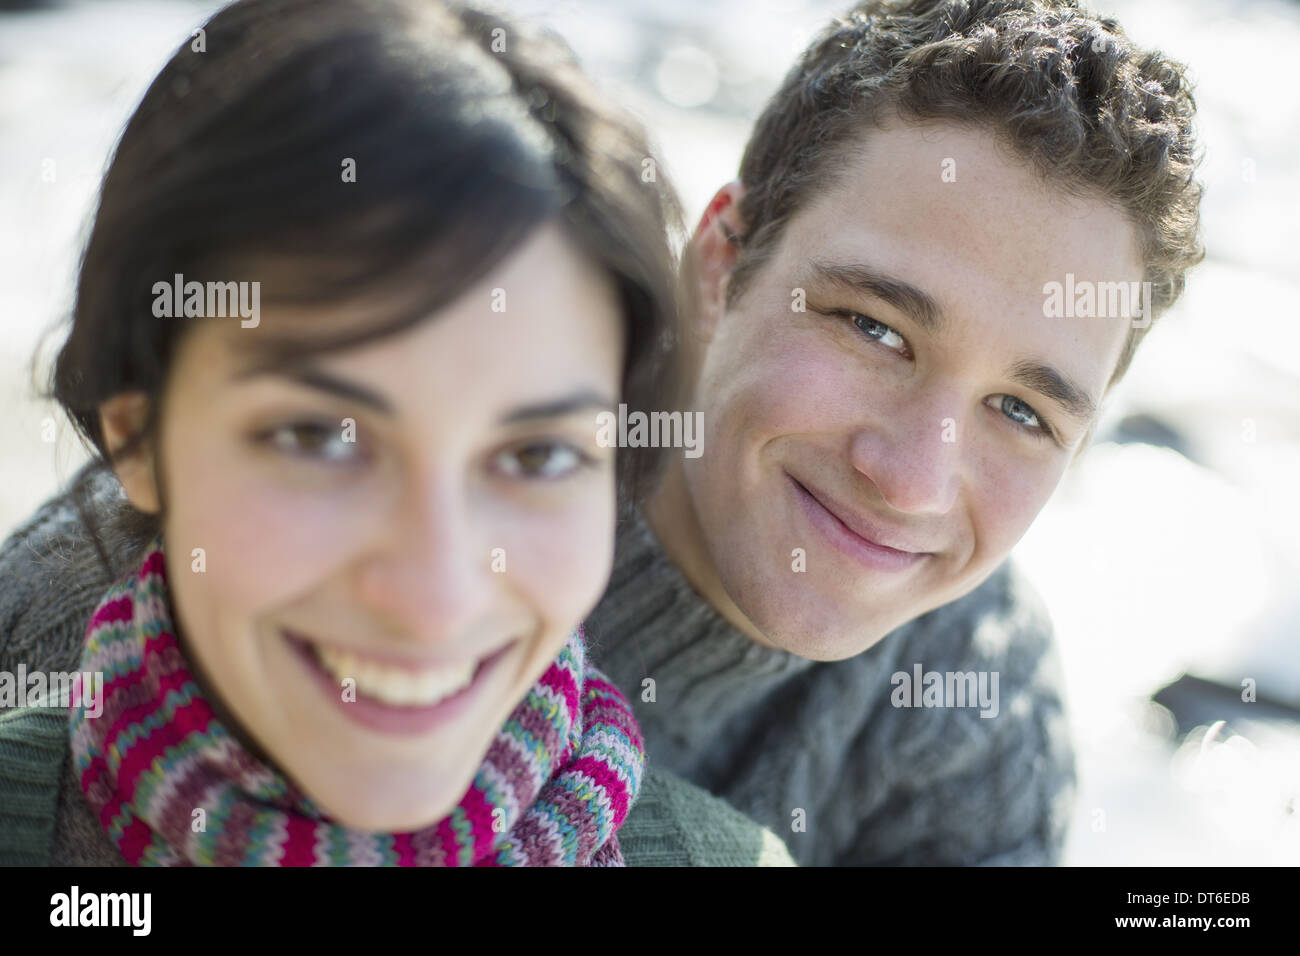 Close up of two people, man and woman, a couple outdoors on a winter day. - Stock Image